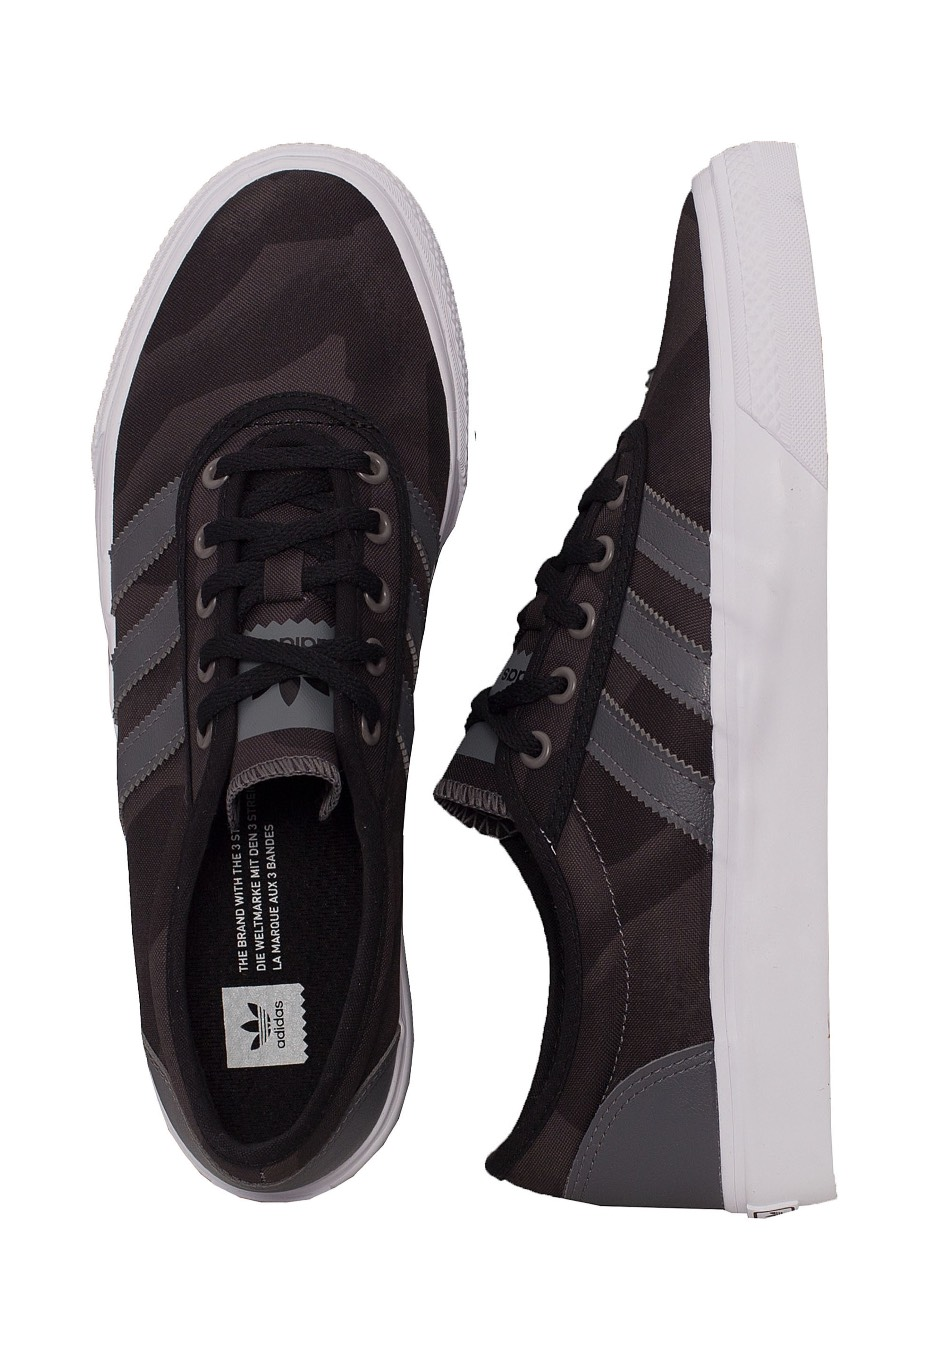 Adidas - Adi-Ease Core Black Solid Grey Ftw White - Shoes - Impericon.com UK 1560680b48040